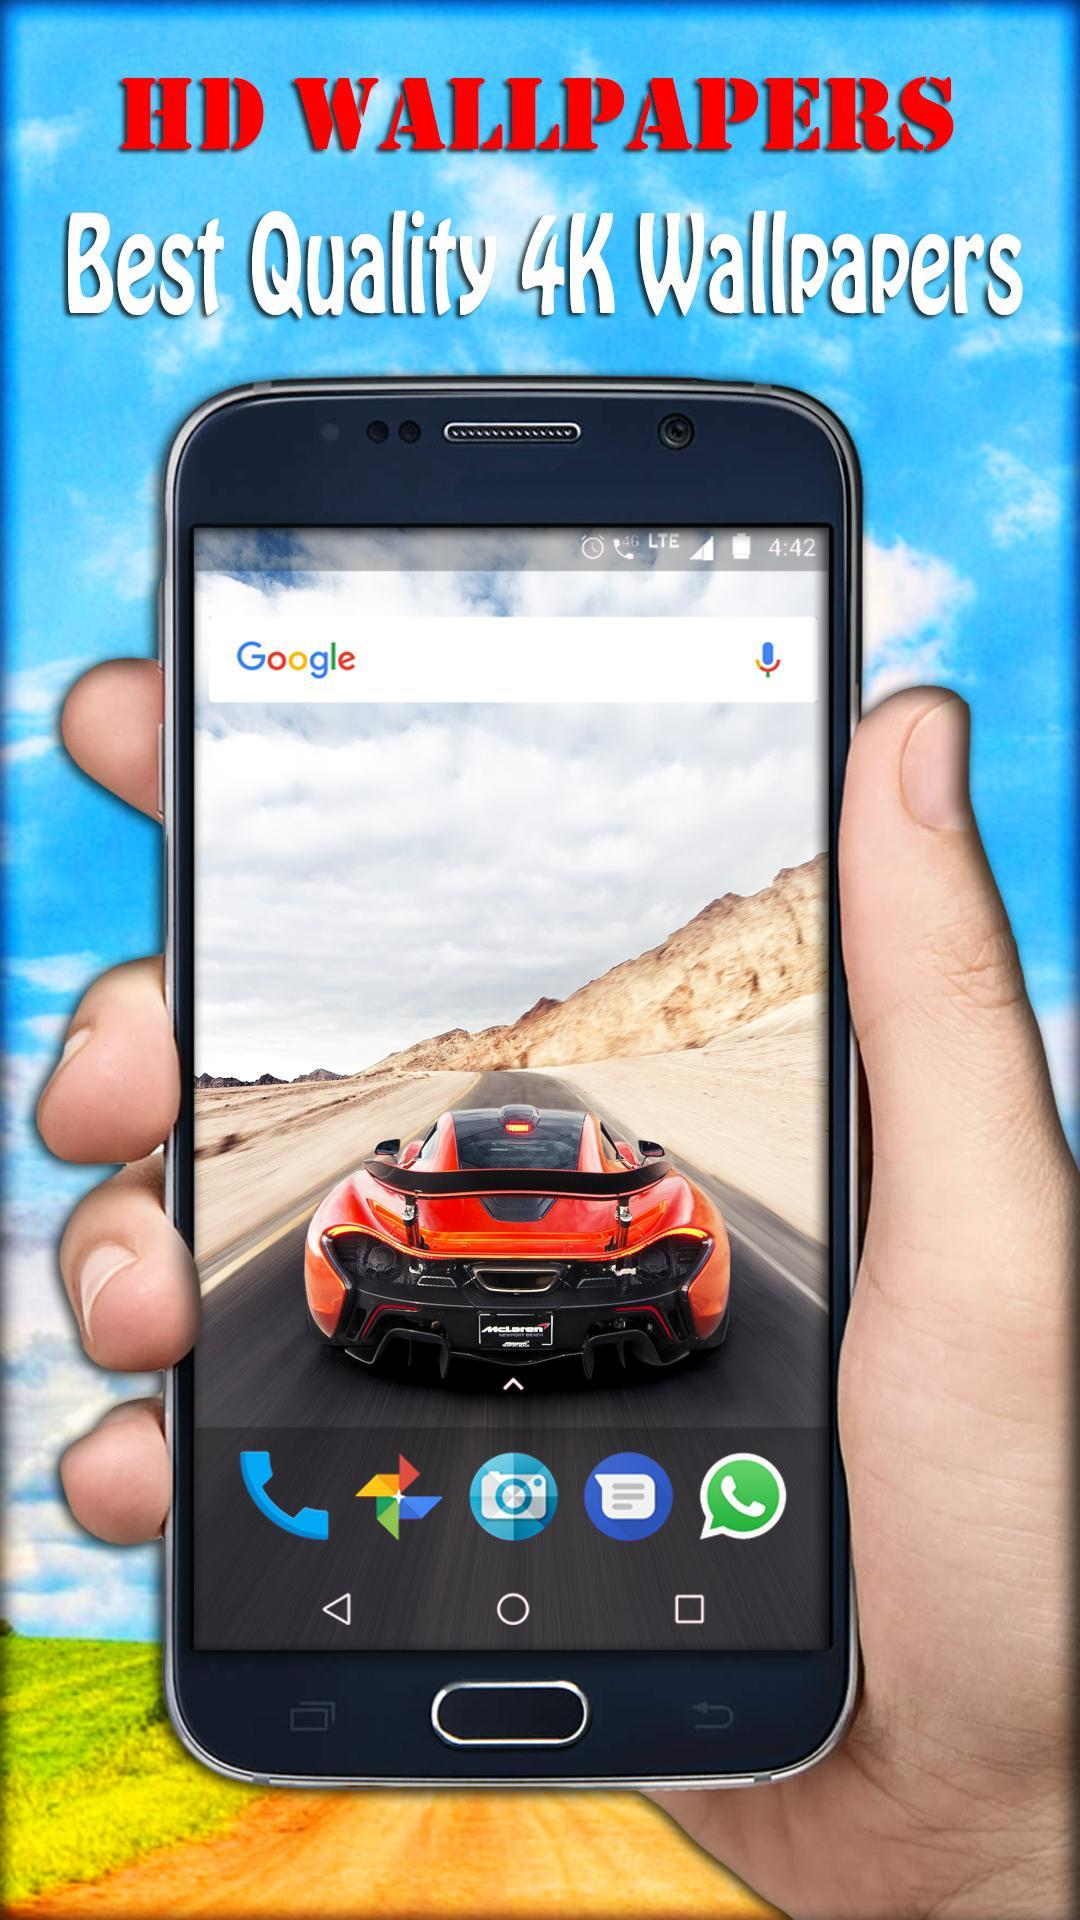 Sports Car Wallpaper 4k Ultra Hd For Android Apk Download